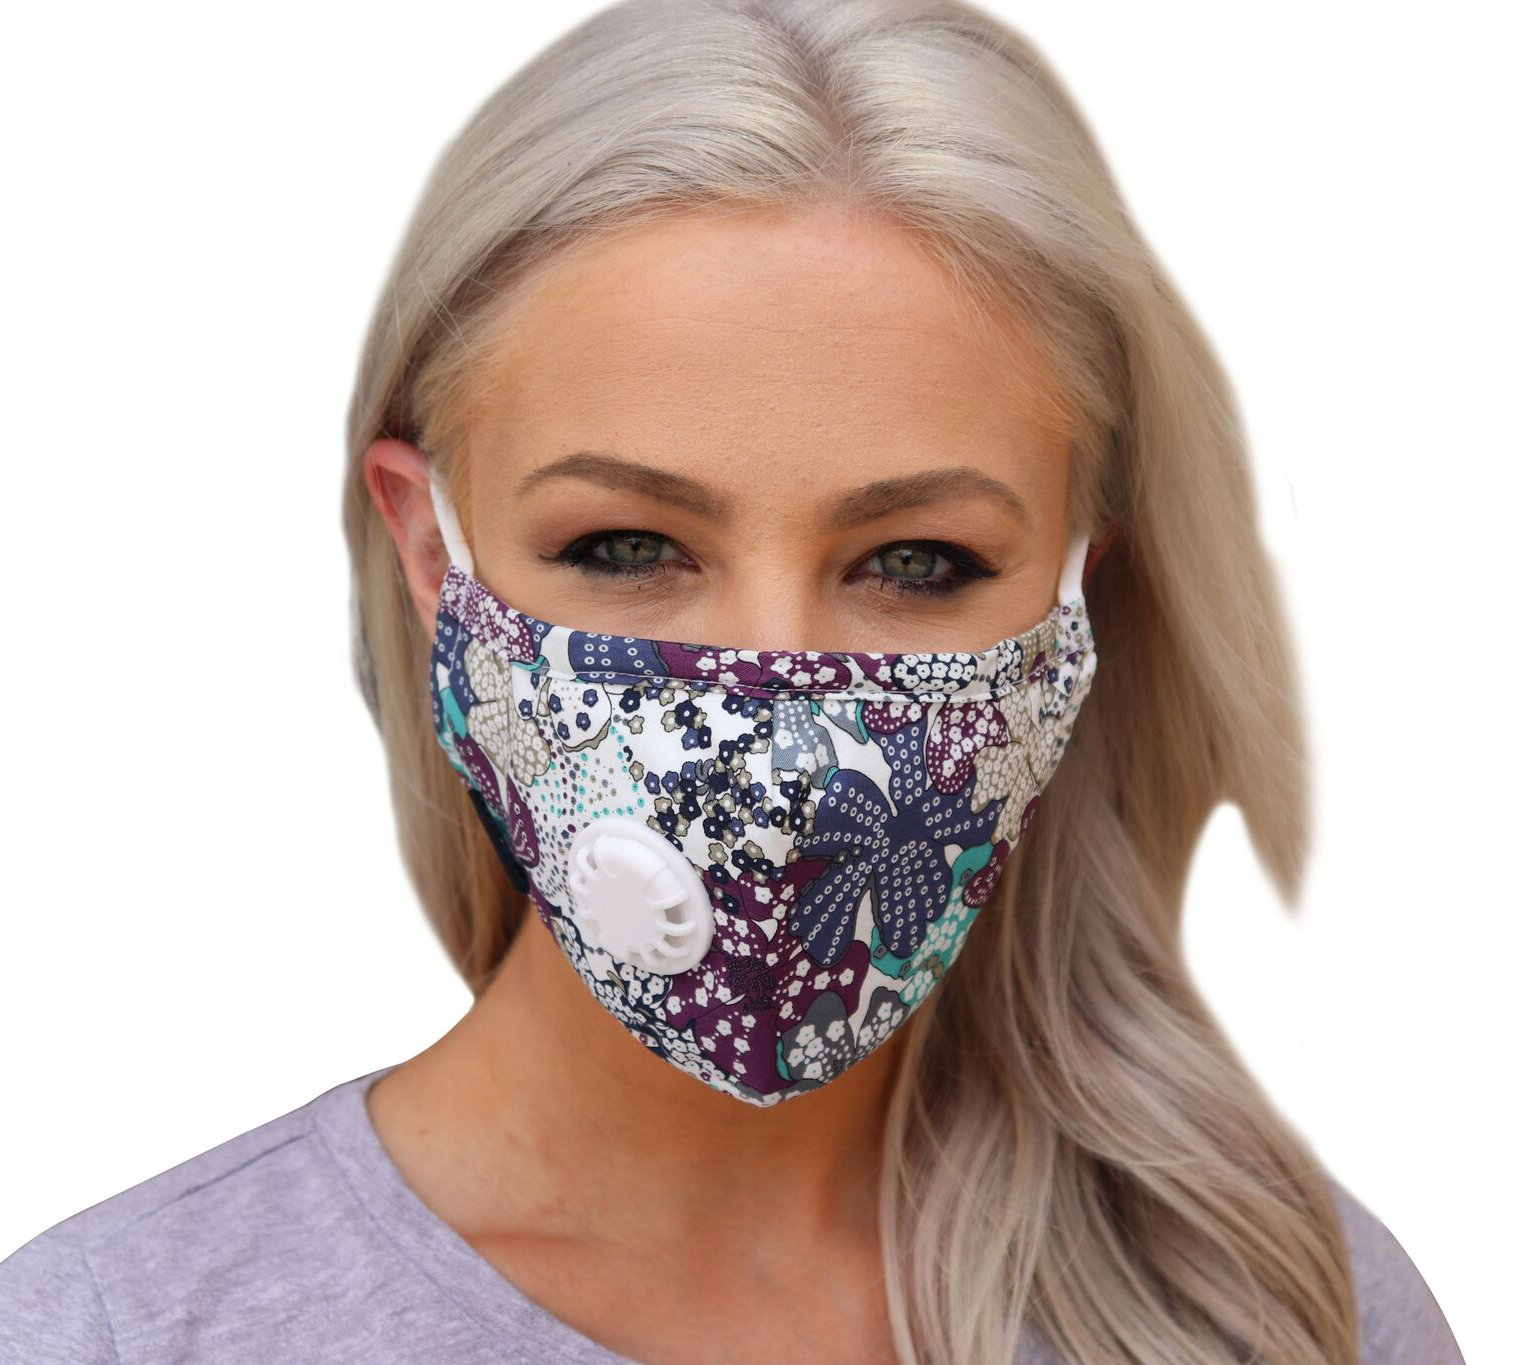 Full Seal Pollution Mask for Men & Women ~ Reusable Cotton Air Filter Mask With Adjustable Ear Loops Perfect for Blocking Pollution Dust Pollen and Germs (Includes 2 Carbon Filters N99) (Blue-Purple)